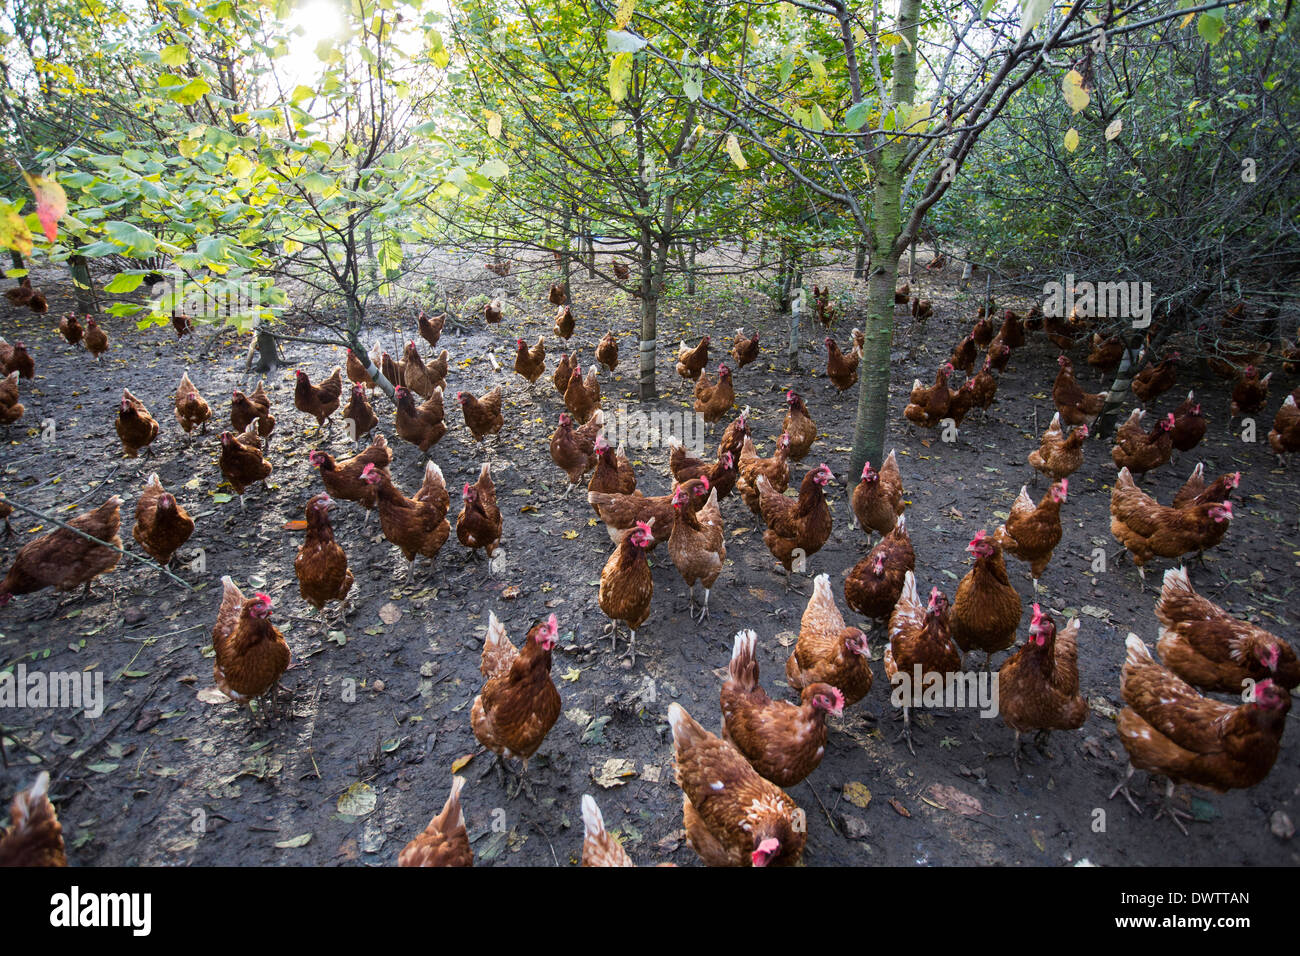 Free range chickens on a farm in Leicestershire, UK - Stock Image